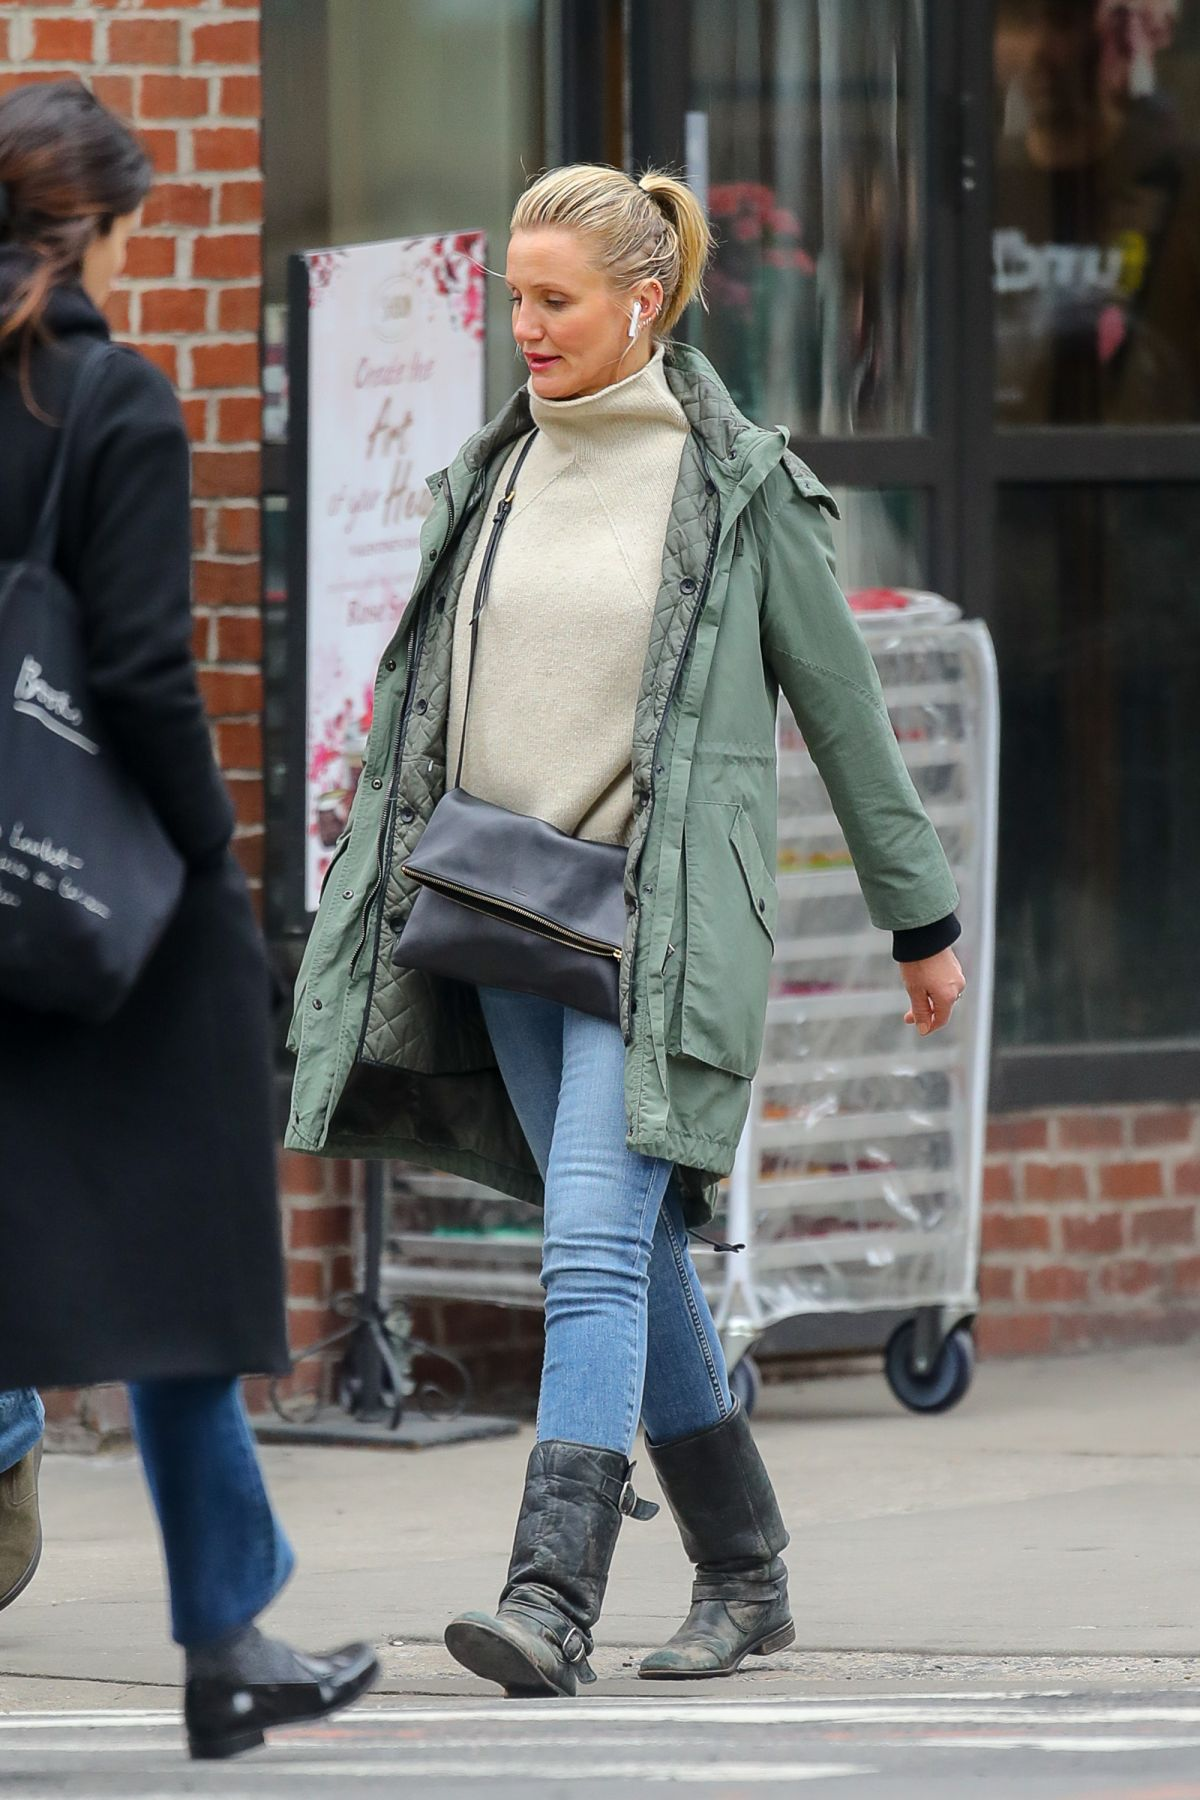 CAMERON DIAZ Out and About in New York 02/15/2019 – HawtCelebs Cameron Diaz Pregnant 2019 Pics